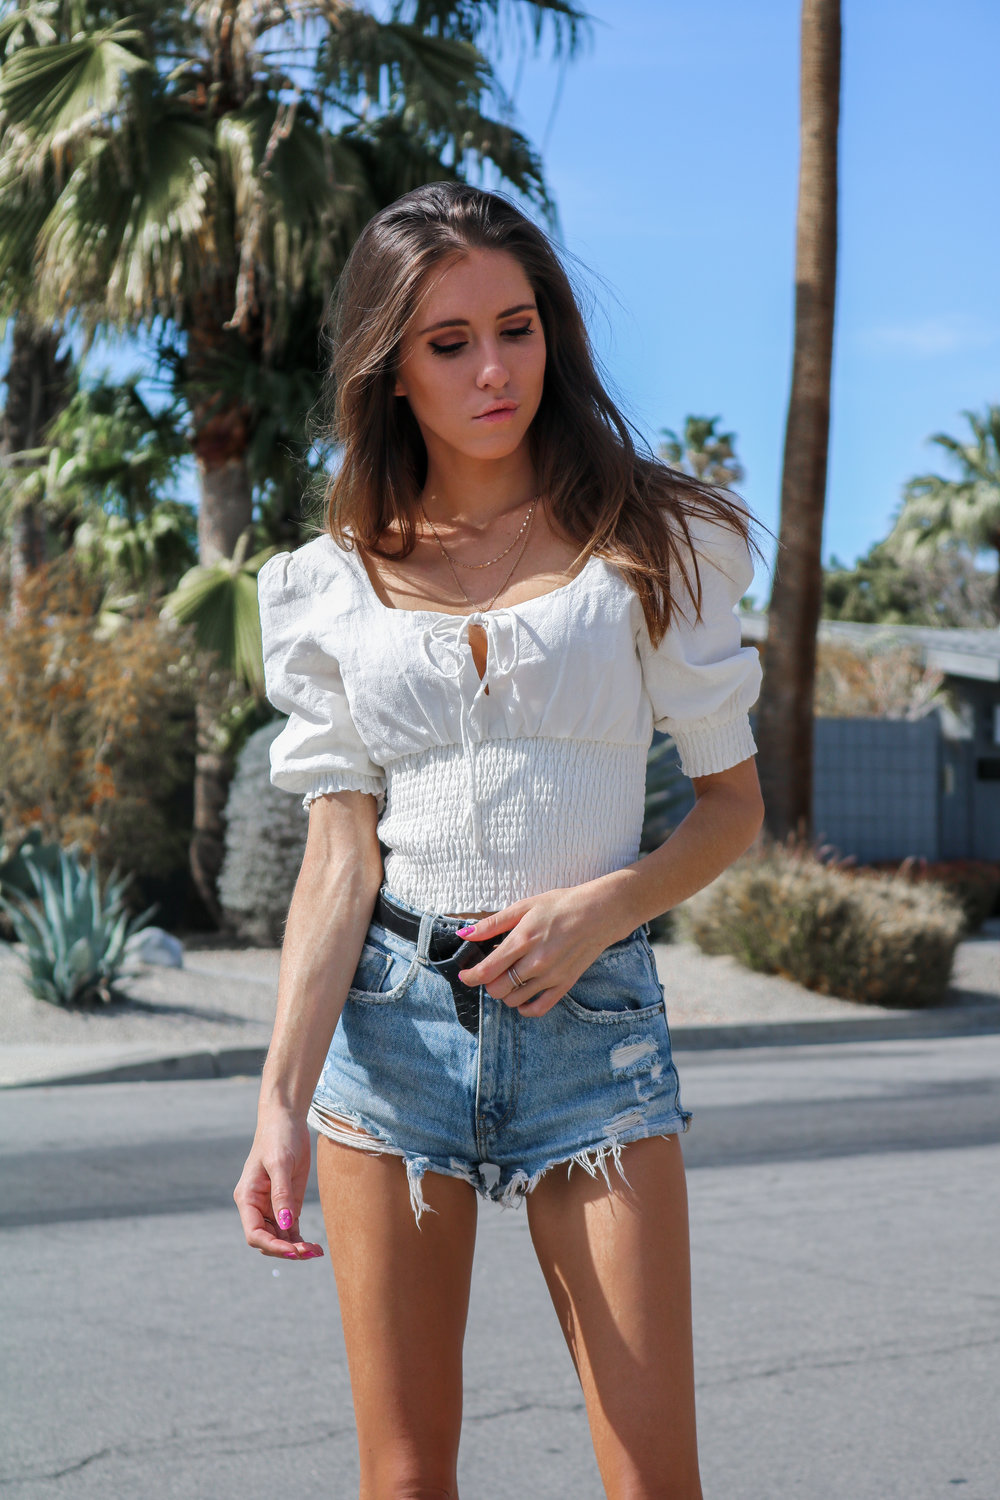 The Hungarian Brunette Puffy sleeves and denim shorts in Palm Springs